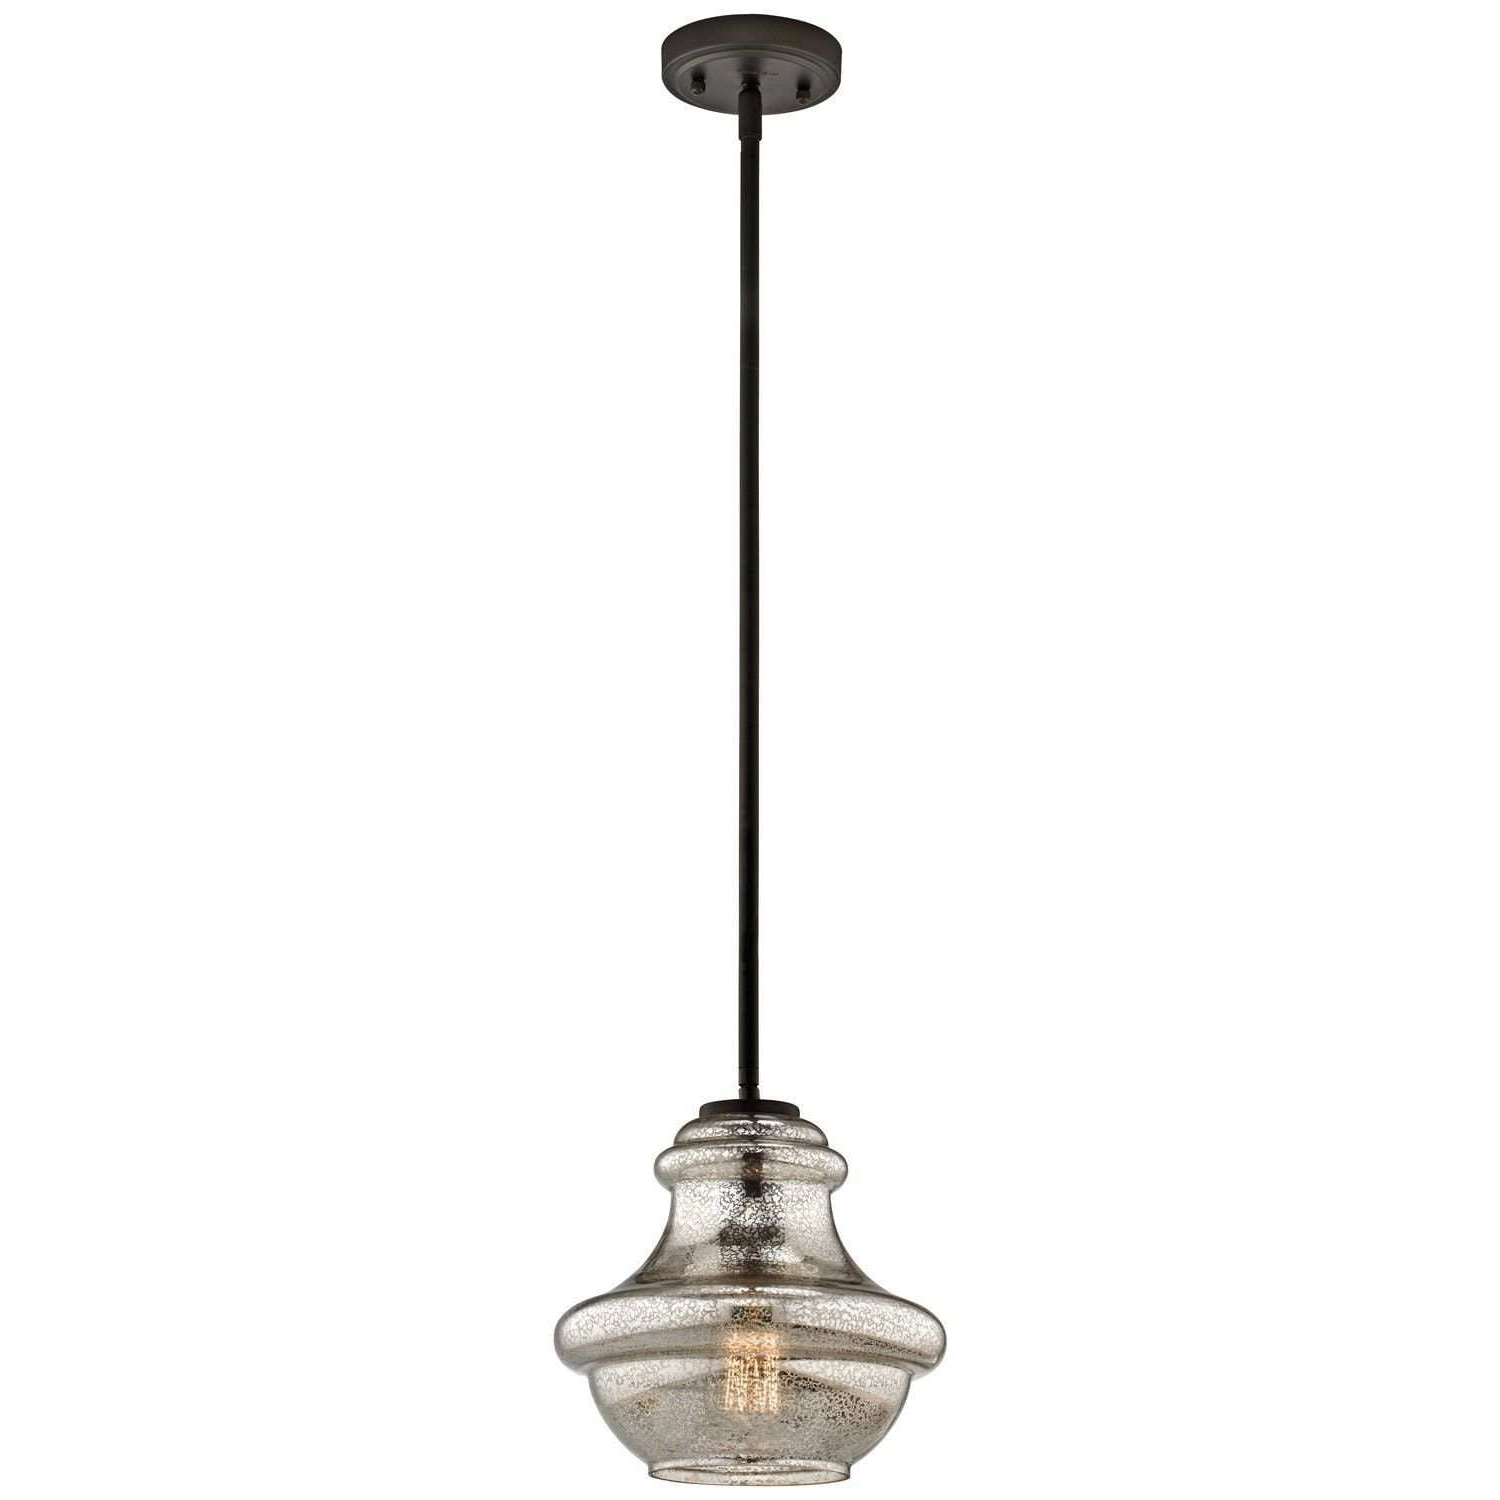 Widely Used Wayfair Ceiling Light Fixtures Beautiful Outdoor Hanging Light Intended For Wayfair Outdoor Hanging Lighting Fixtures (View 20 of 20)